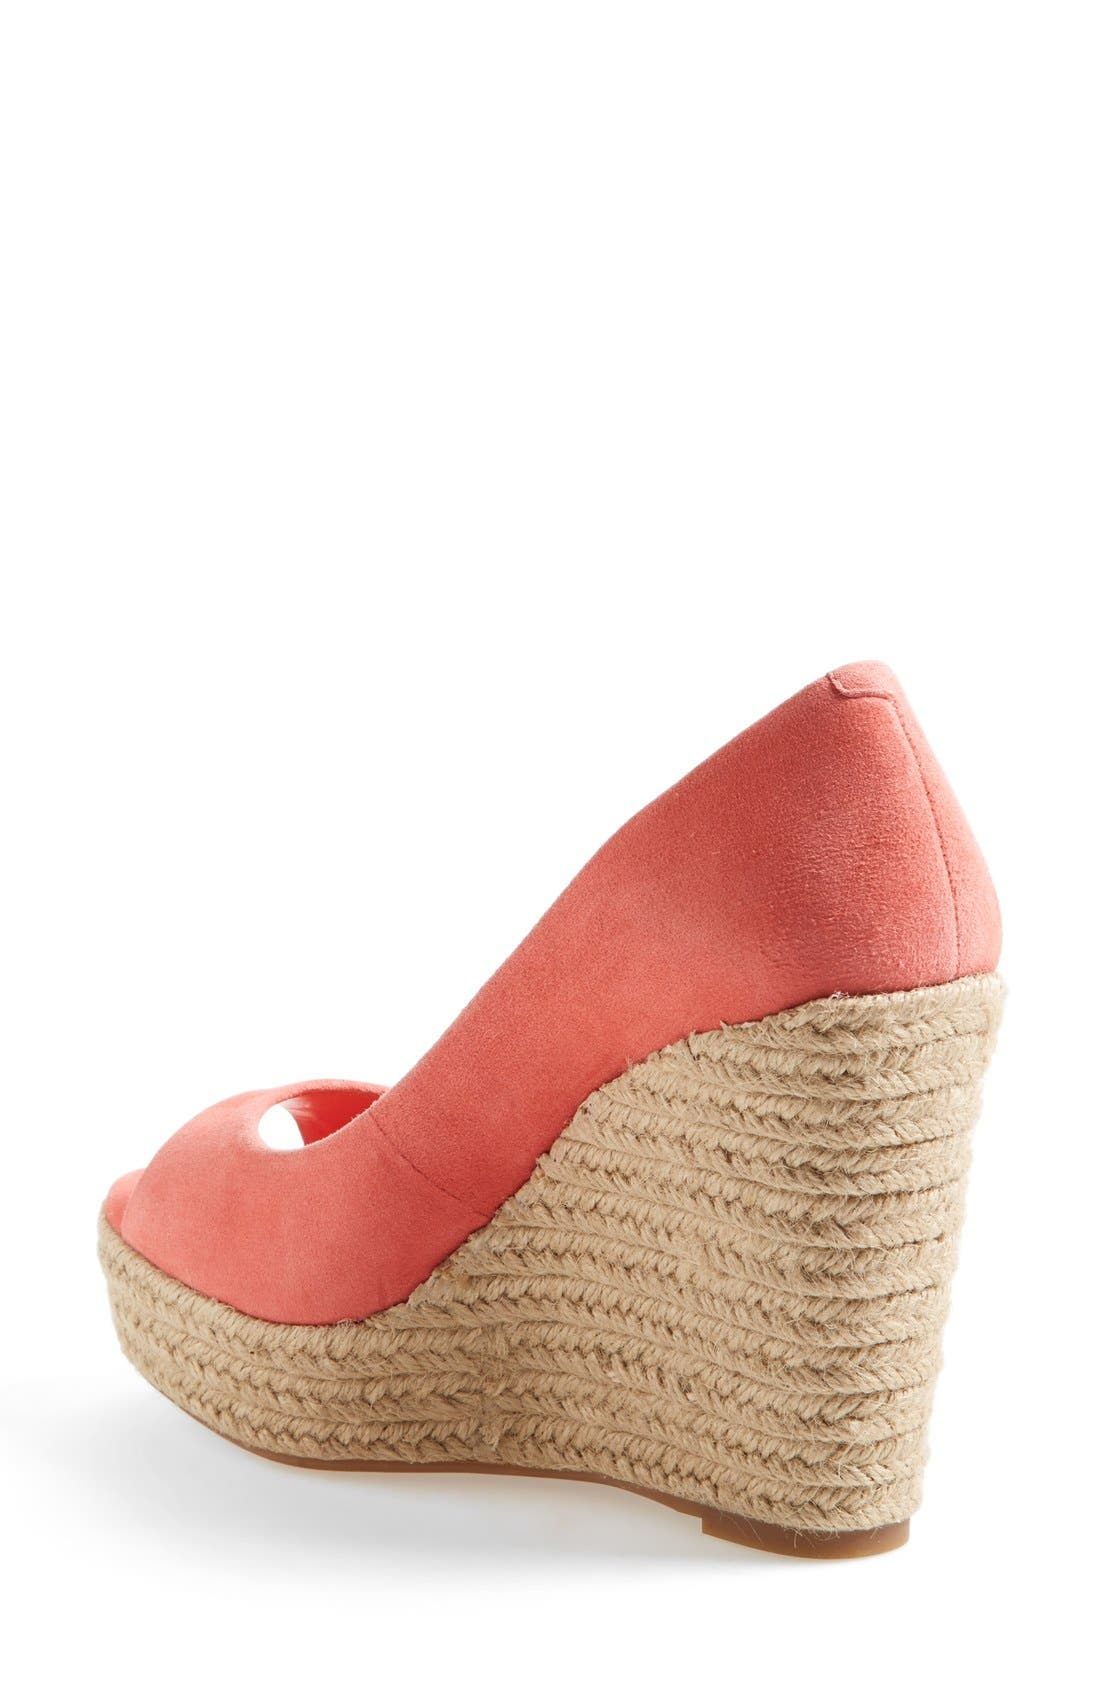 Alternate Image 2  - Vince Camuto 'Totsi' Peep Toe Espadrille Wedge (Women)